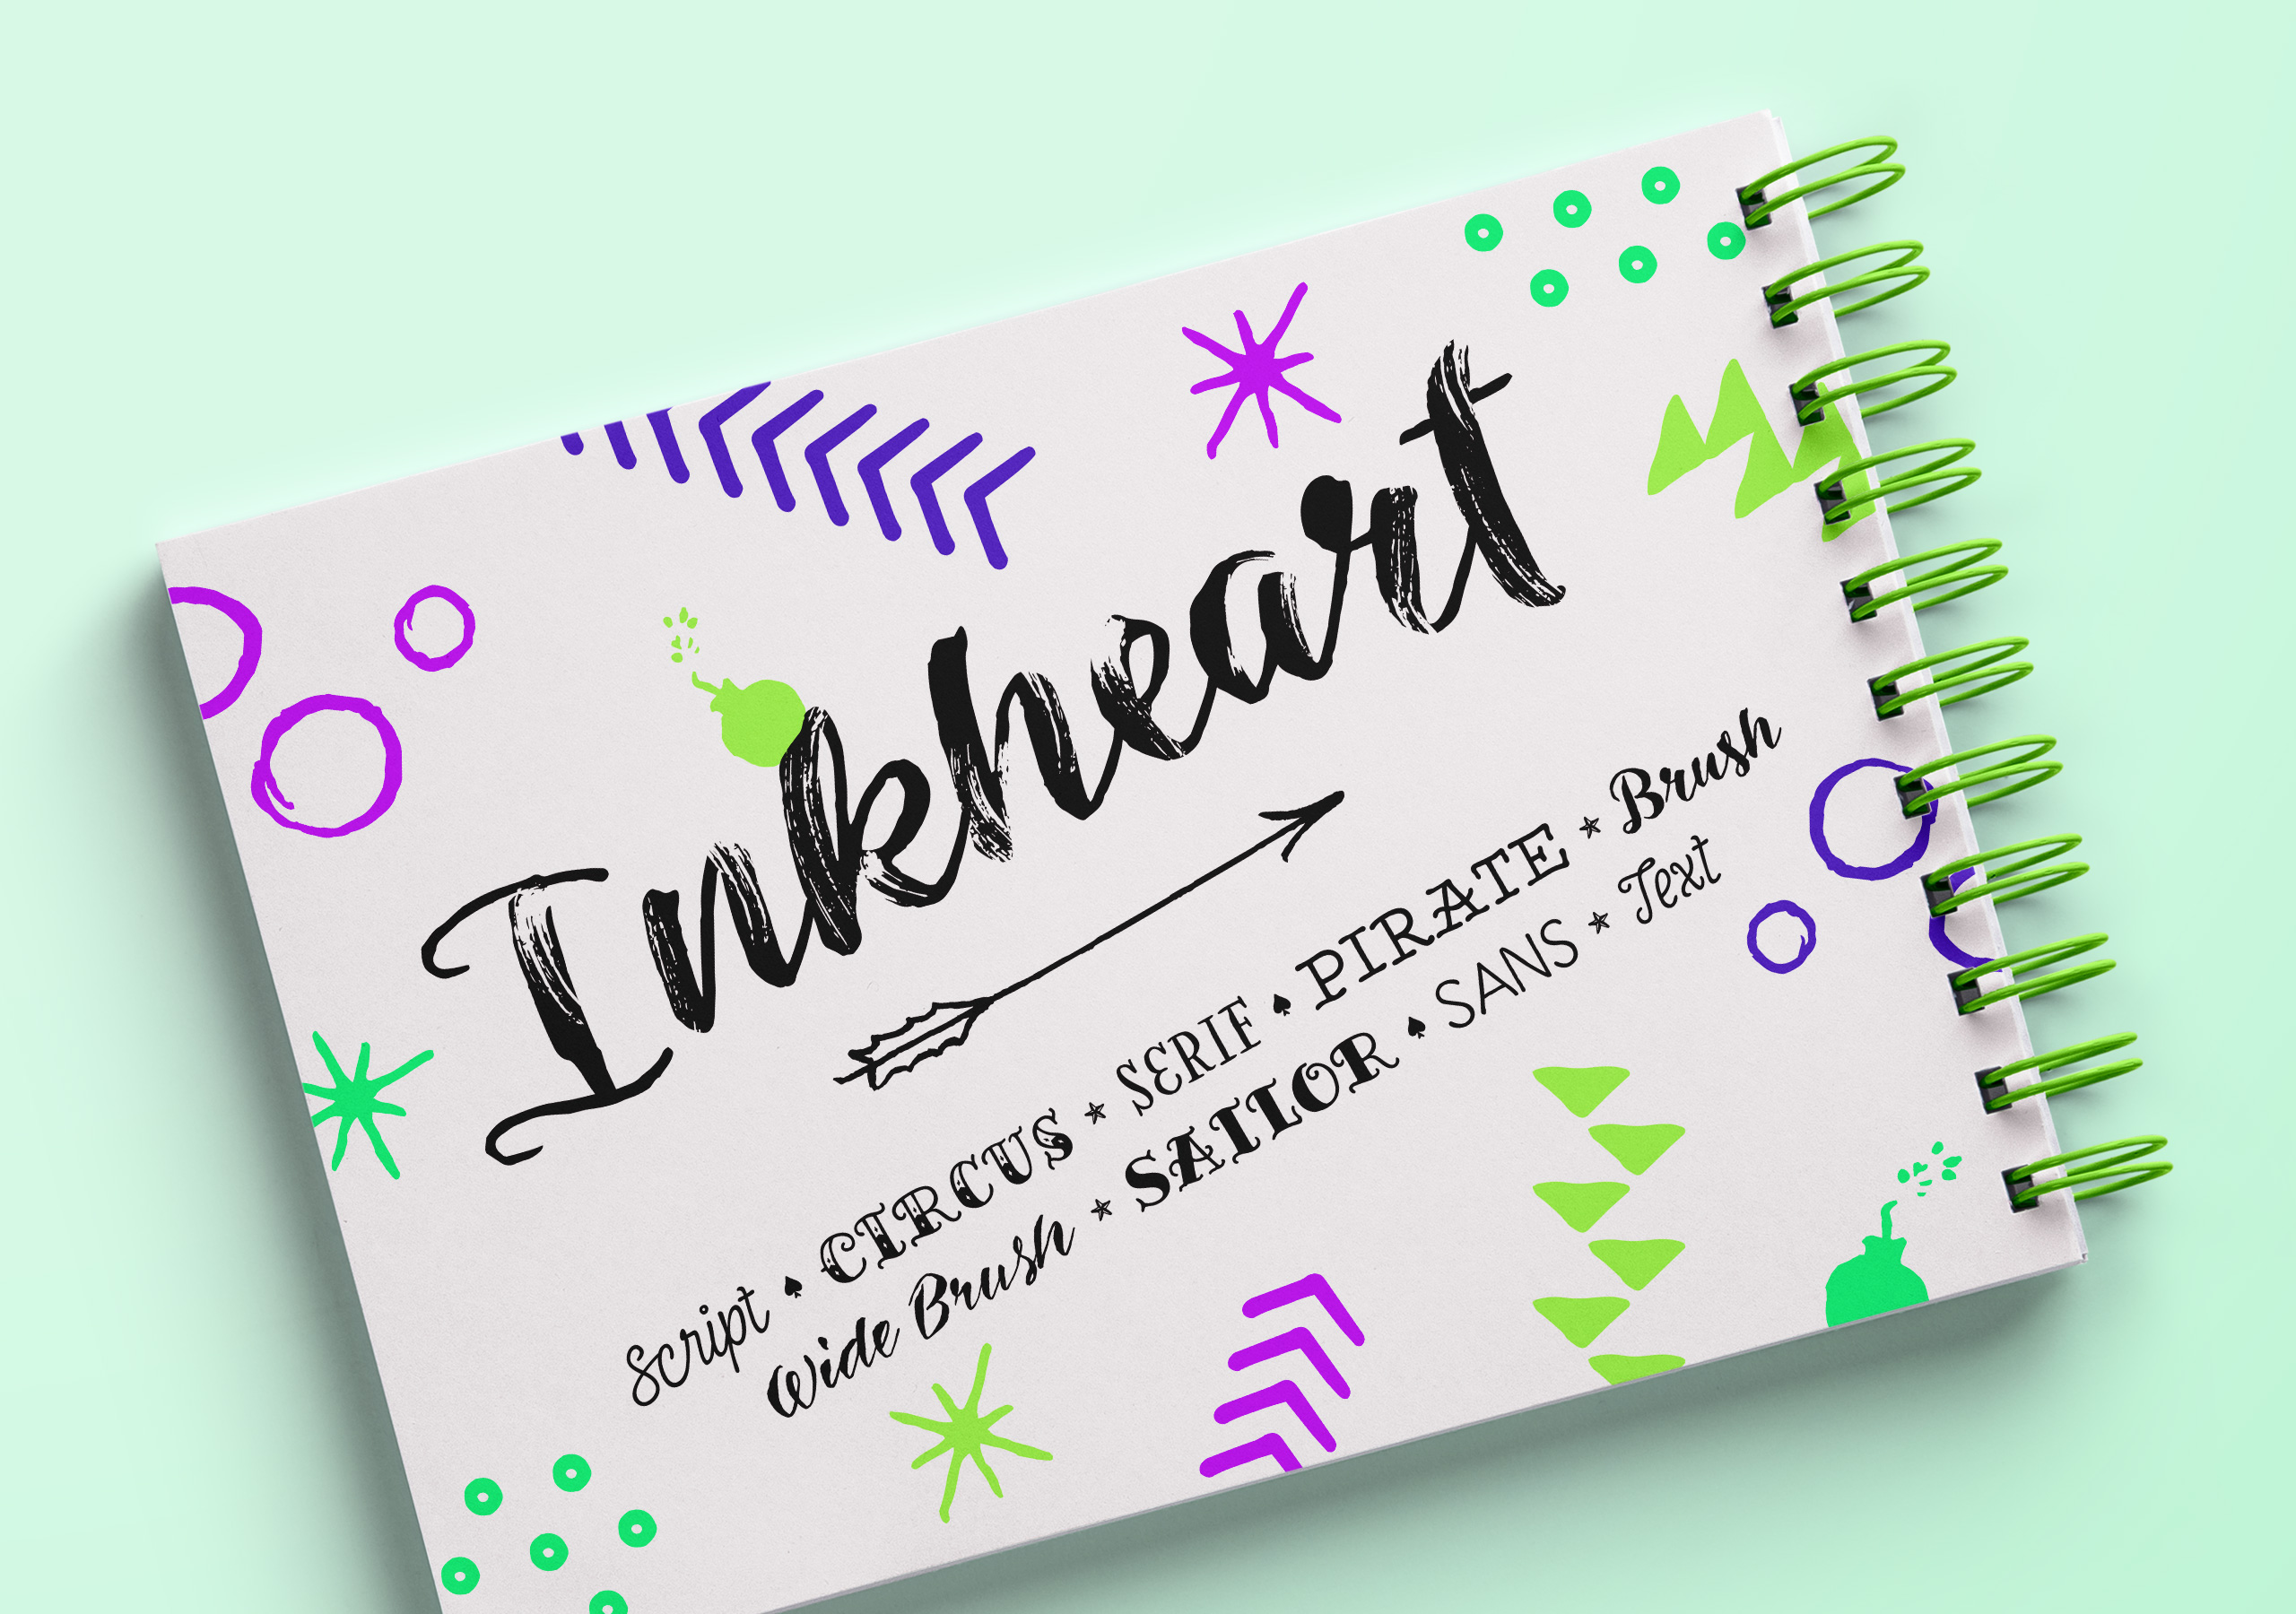 Fictitious use case for Inkheart by Alexandra Schwarzwald